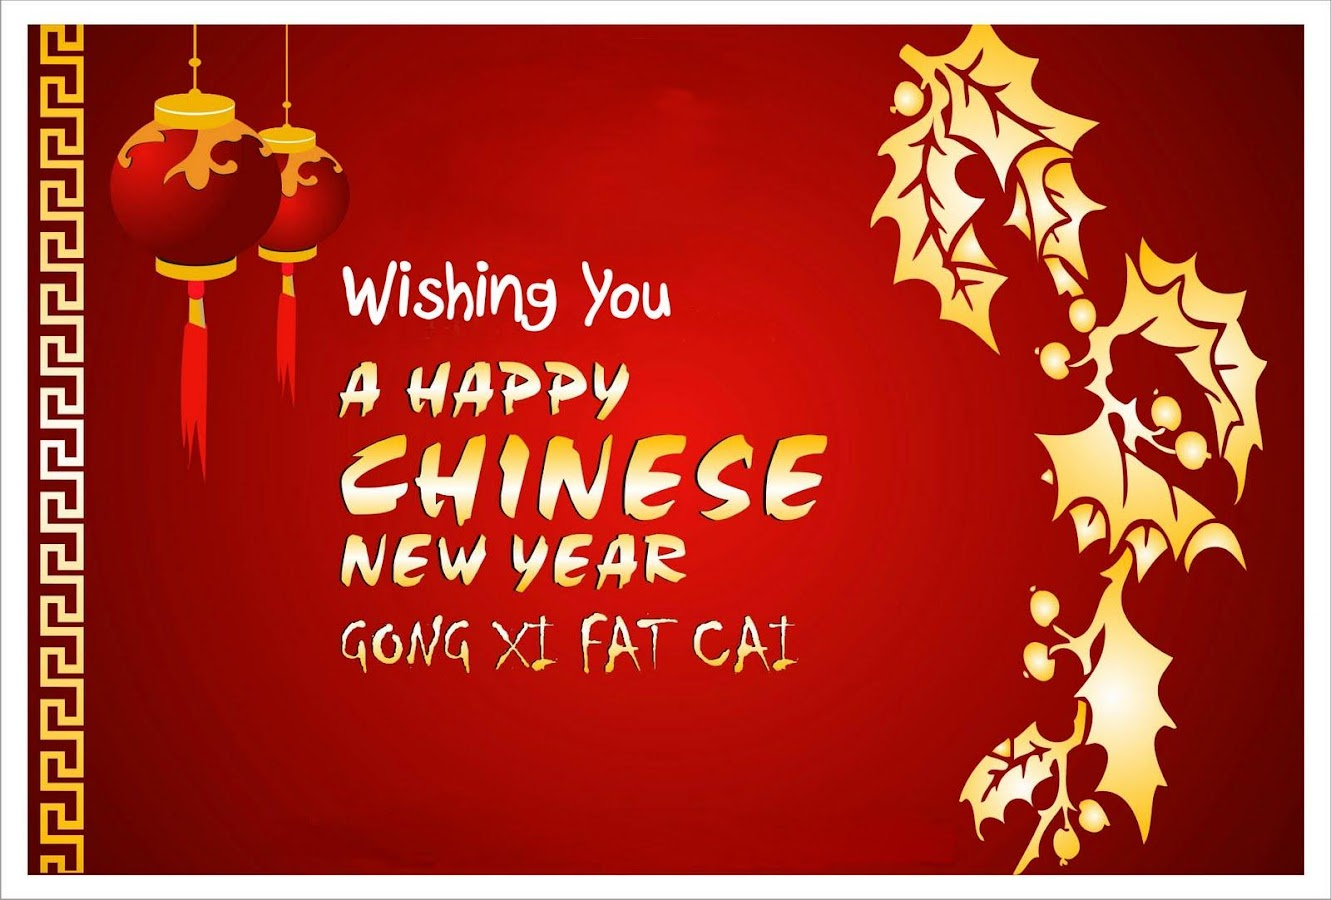 chinese new year 2015 pictures screenshot - Chinese New Year Images 2015